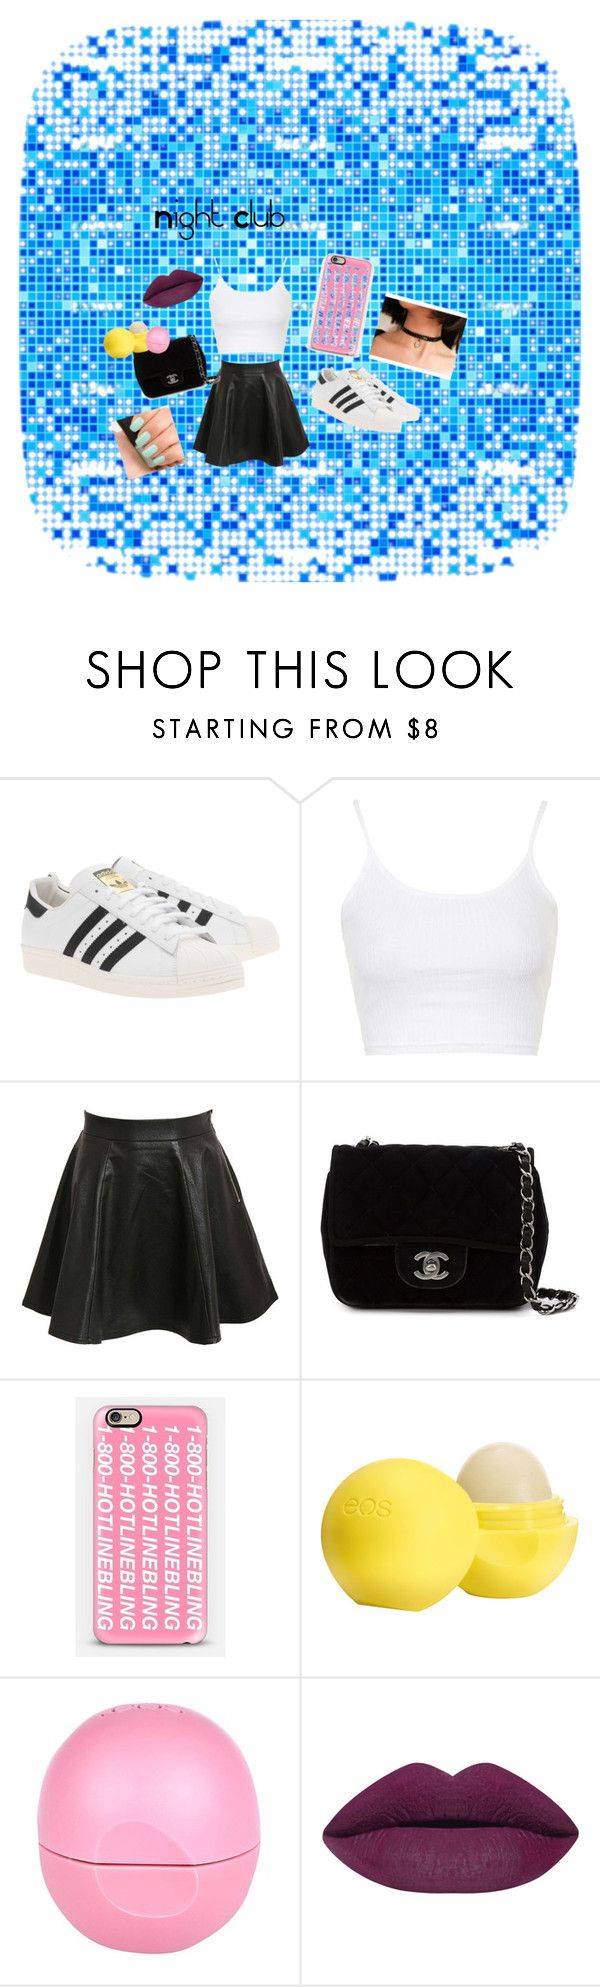 """Night Club"" by lidage on Polyvore featuring adidas Originals, Topshop, Pilot, Chanel, Casetify, Eos, River Island, NARS Cosmetics, Marlangrouge and NightOut"